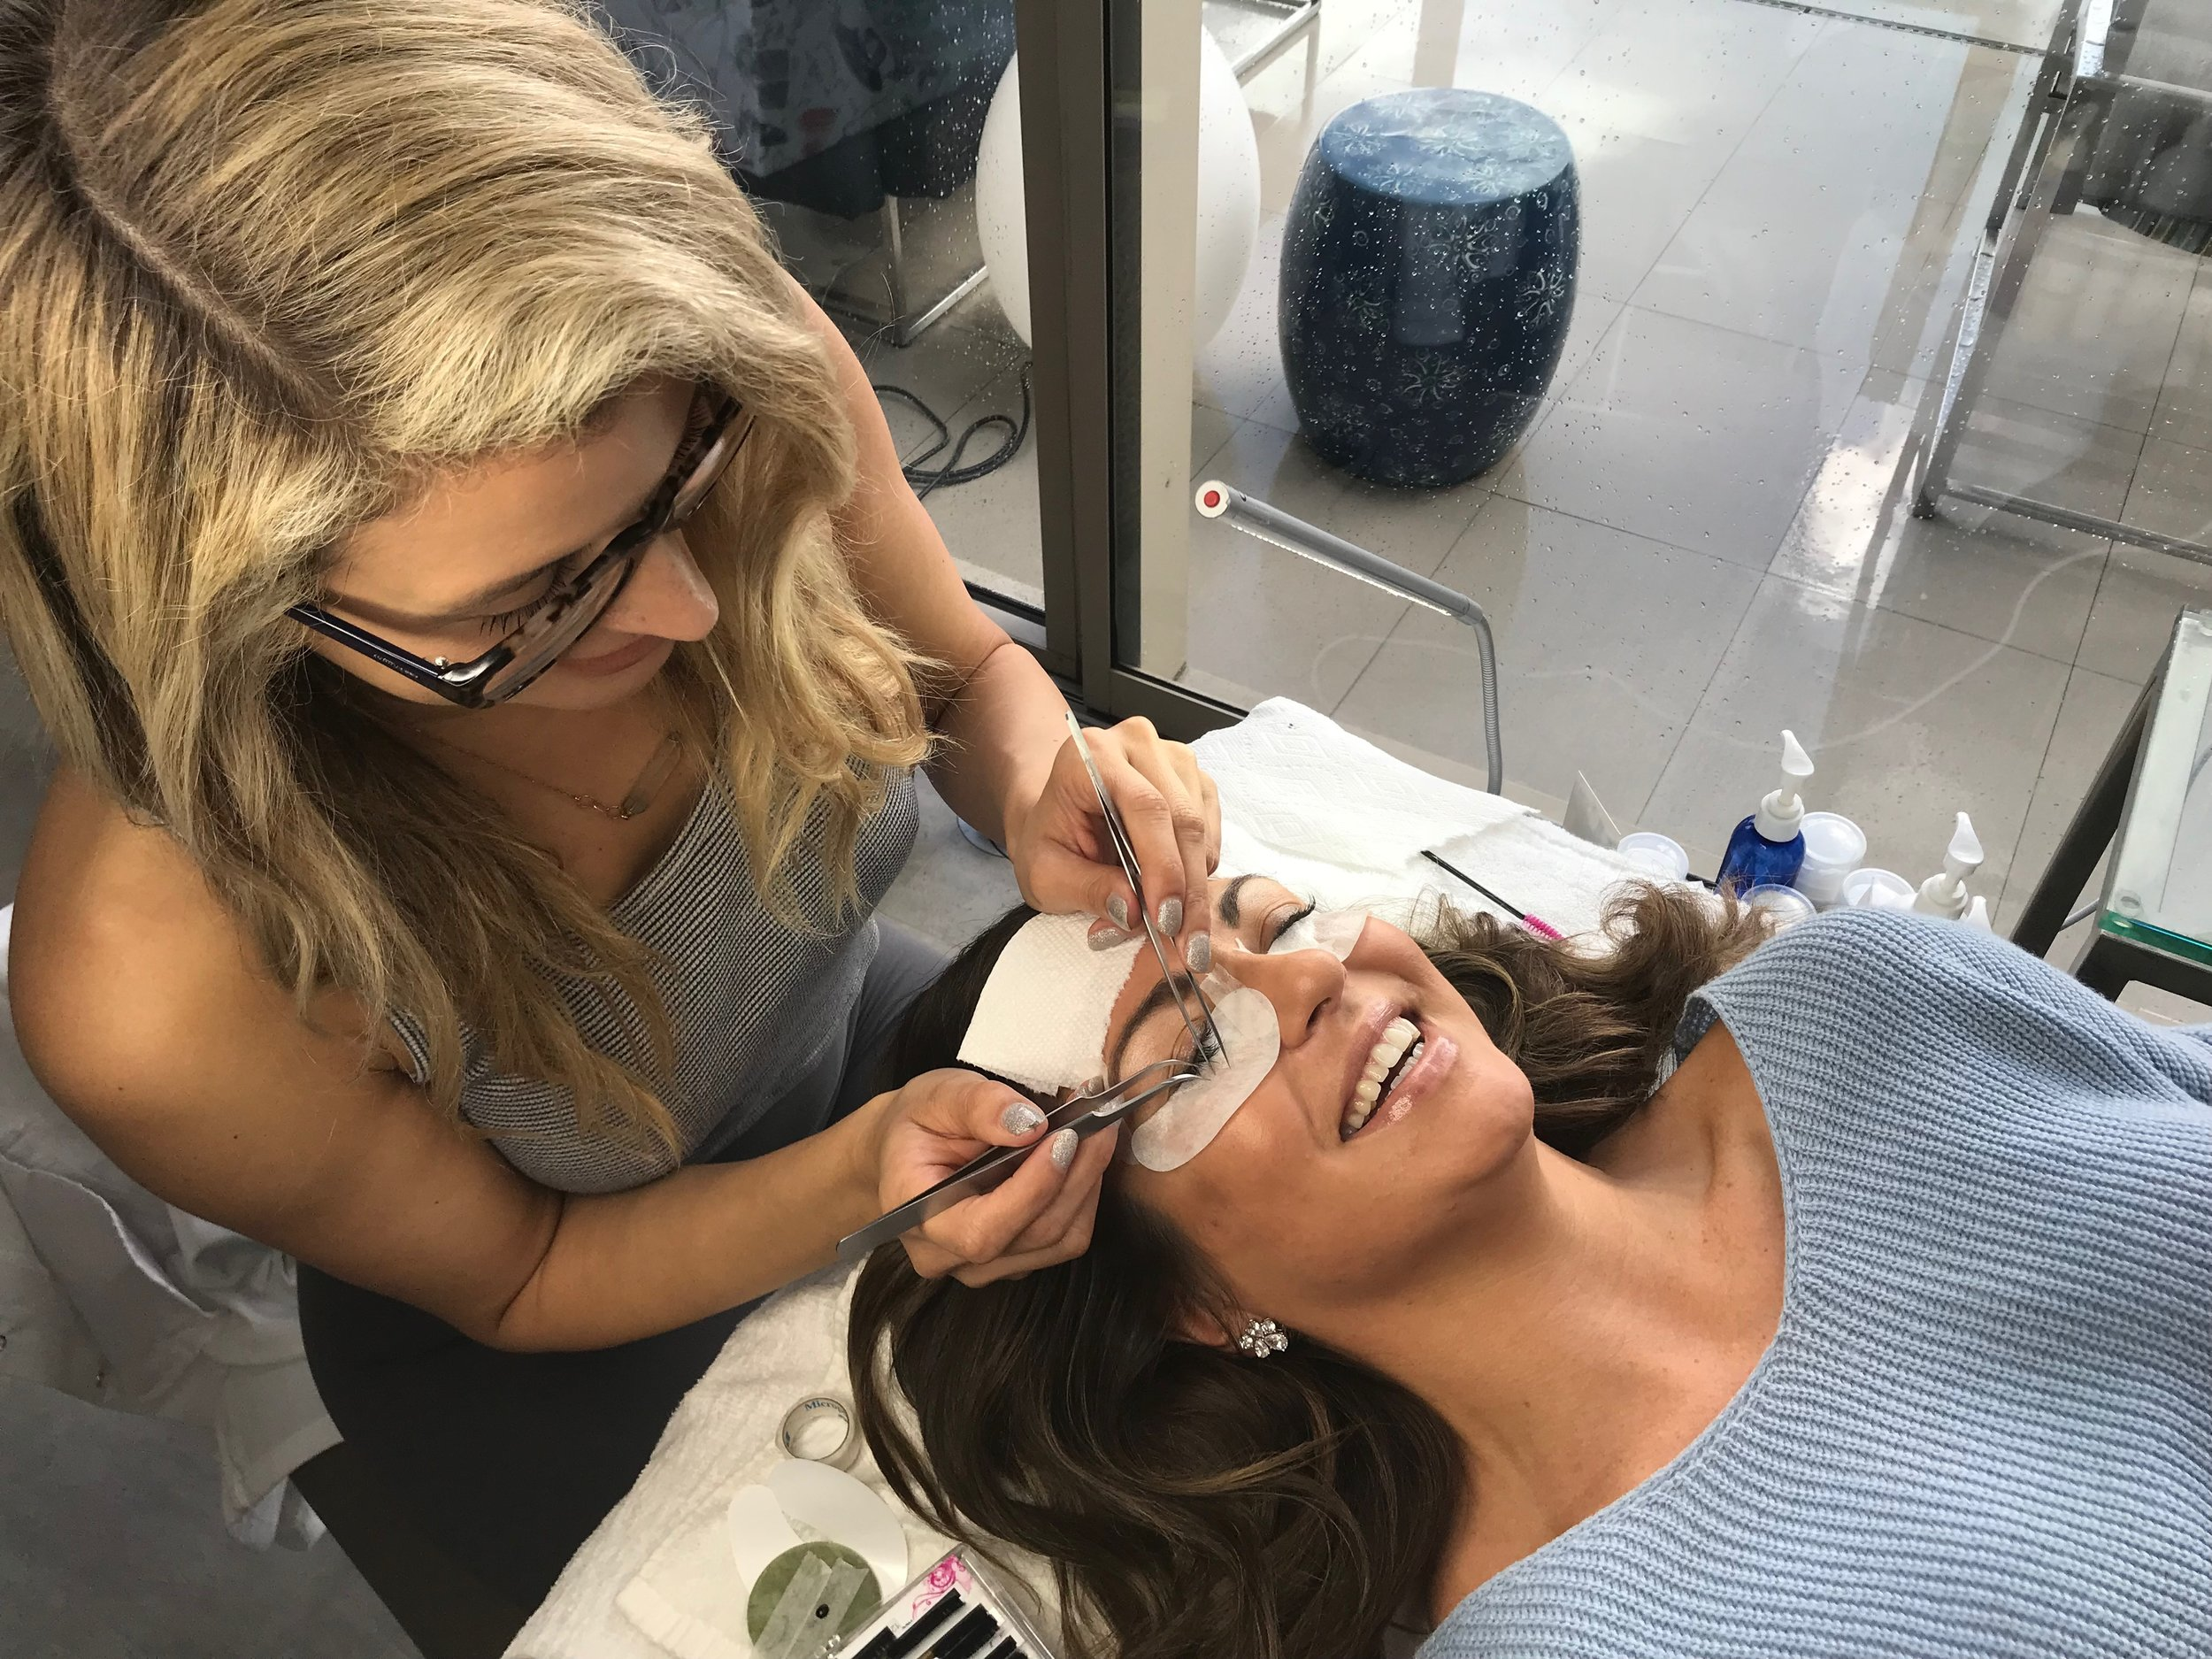 Studio Services - Having the proper environment is a crucial element for providing the best performance during the eyelash application process, I can promise you a clean, relaxing environment  to which I will fulfill your beauty needs!Services provided at my studio in West Hollywood- address available upon request. Full set:  2 hour applicationEyelash fill:  every 2-3 weeks | 1 hour applicationAdditional Late/ Cancellation Fees Apply without 24 hour notice